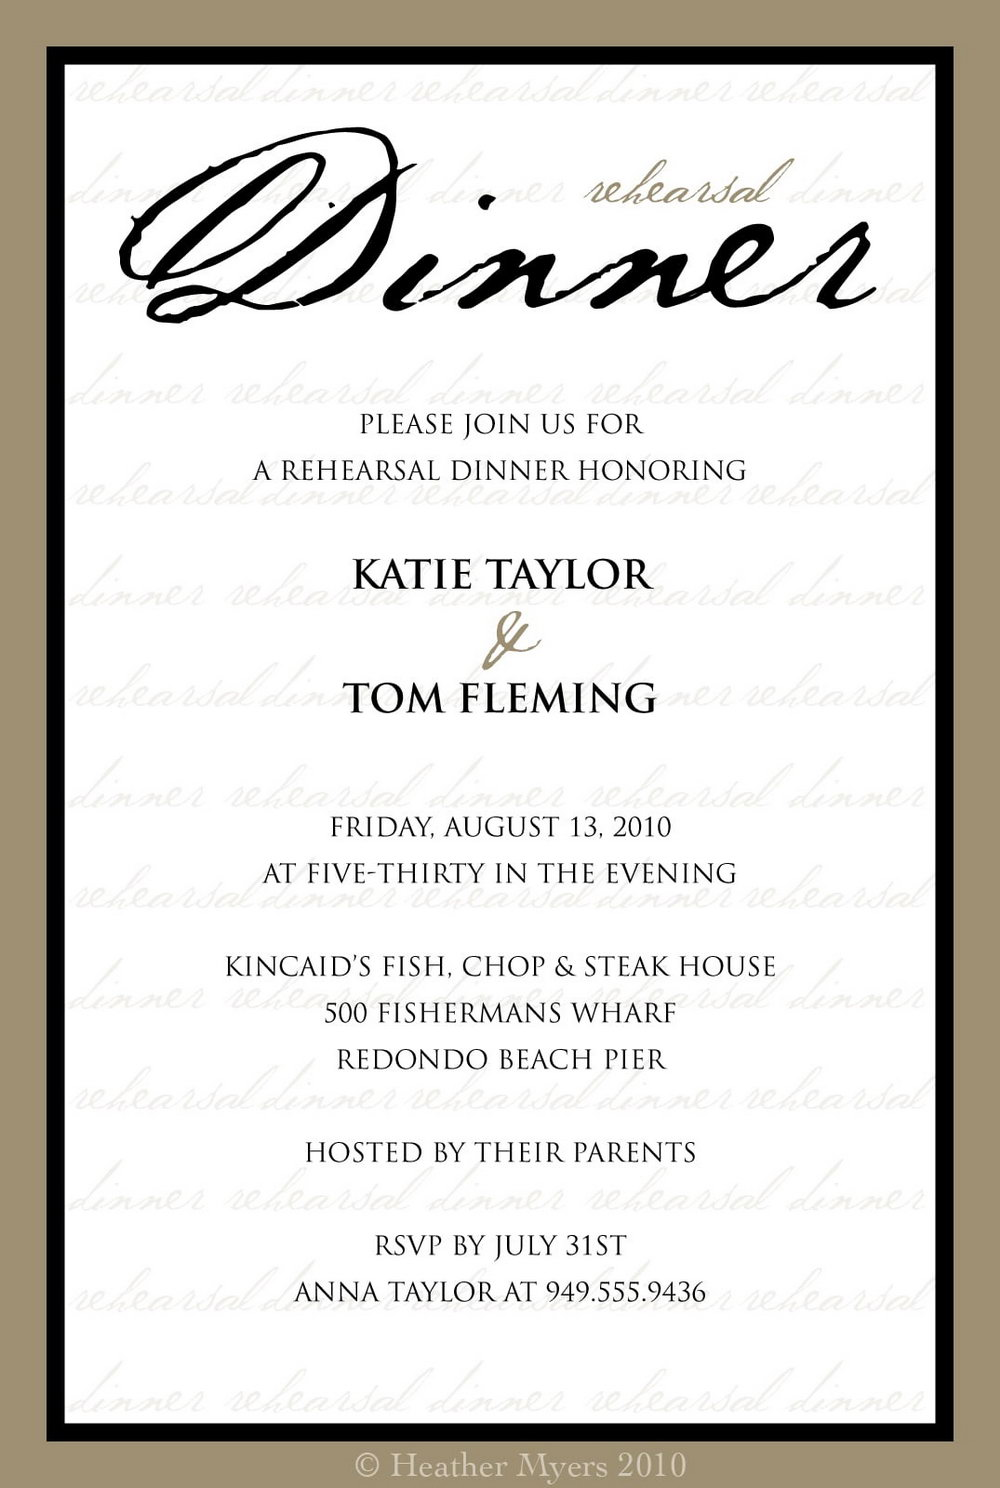 Rehearsal Dinner Invitation Template Word